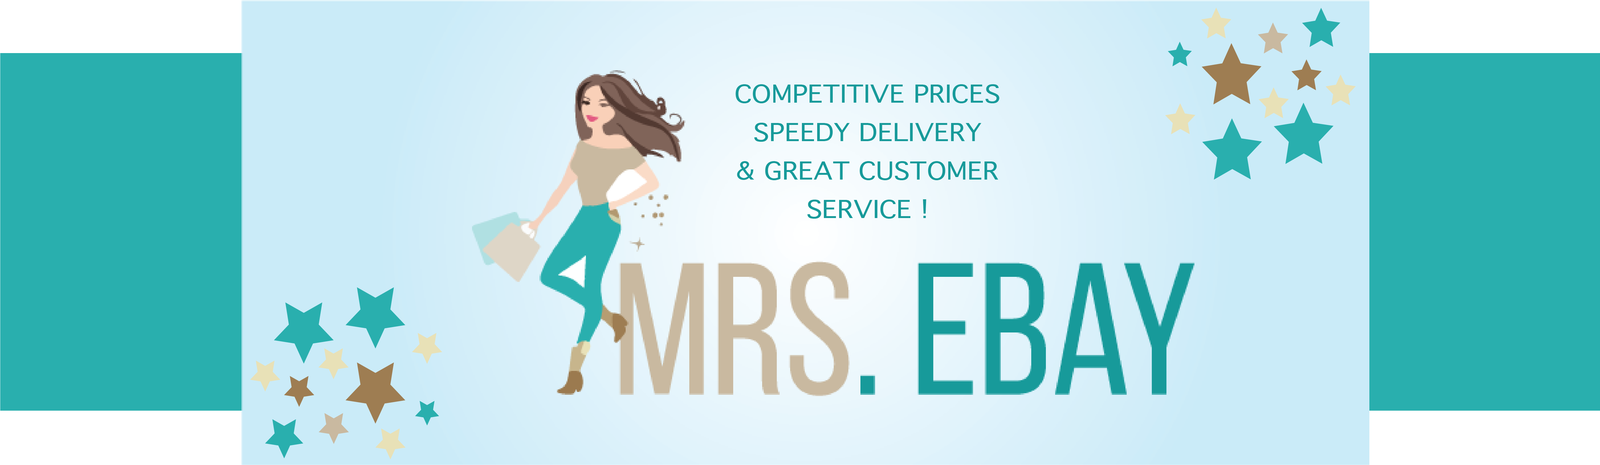 Mrs. e-Bay_Deals